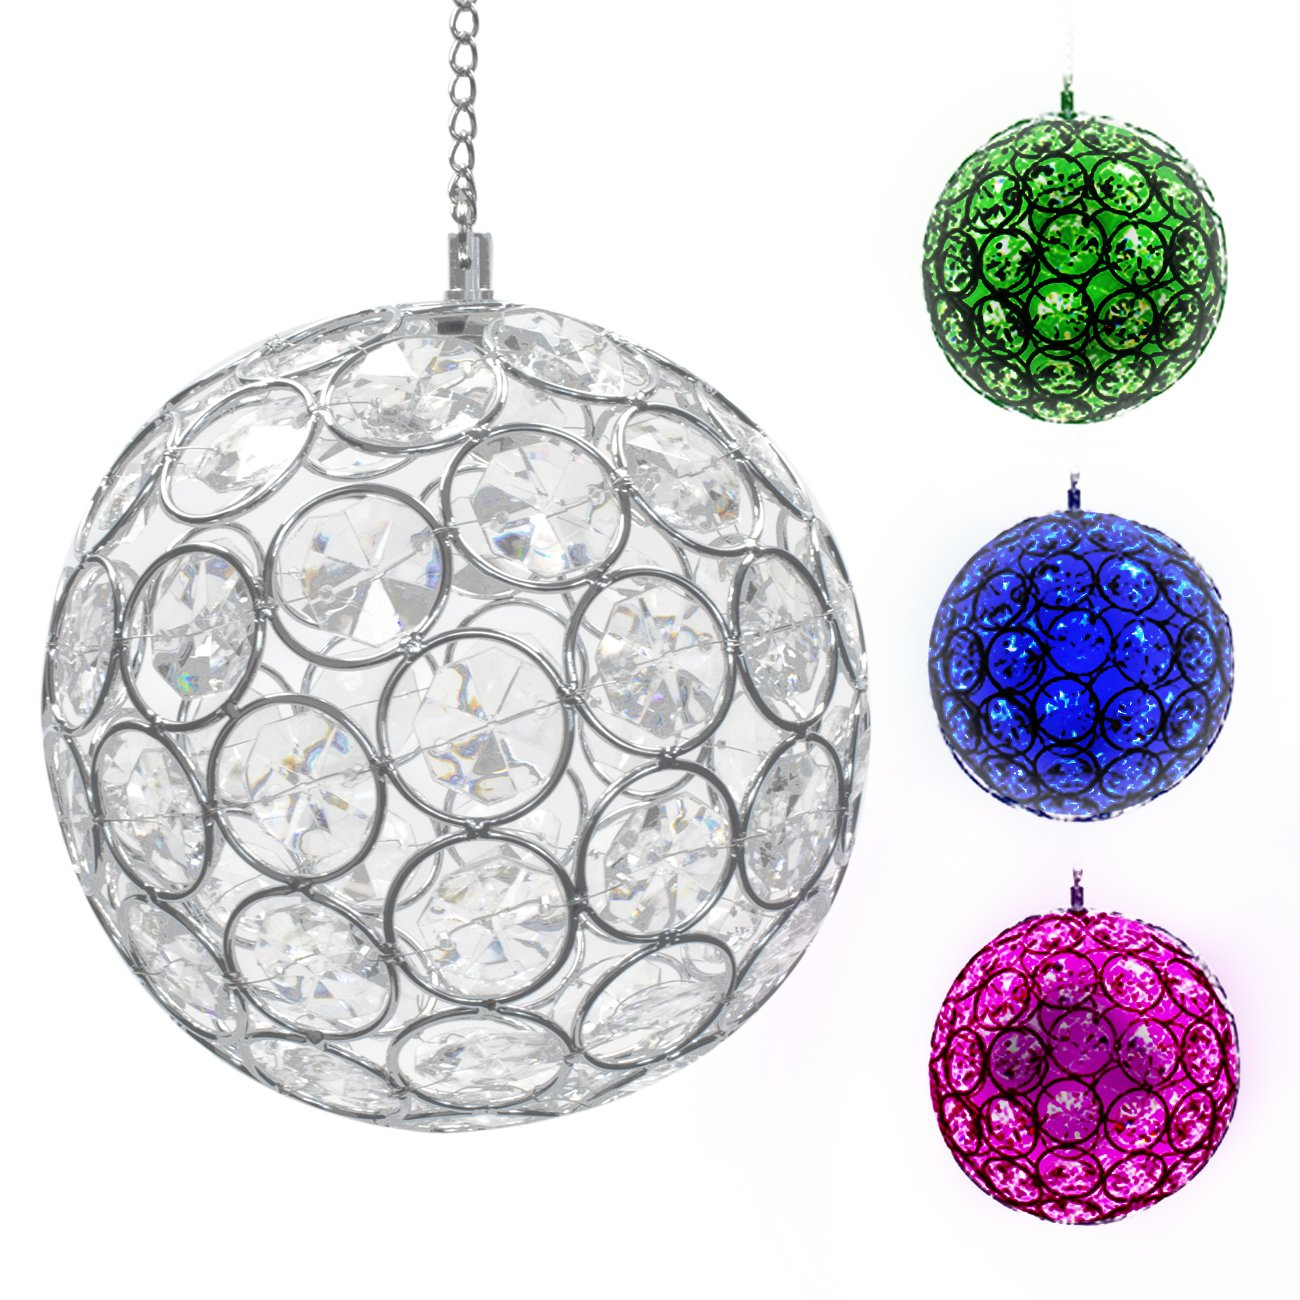 LED Concepts Solar Hanging Crystal Ball Light – Outdoor LED Gazing Ball Light with Sparkling LED Light Colors